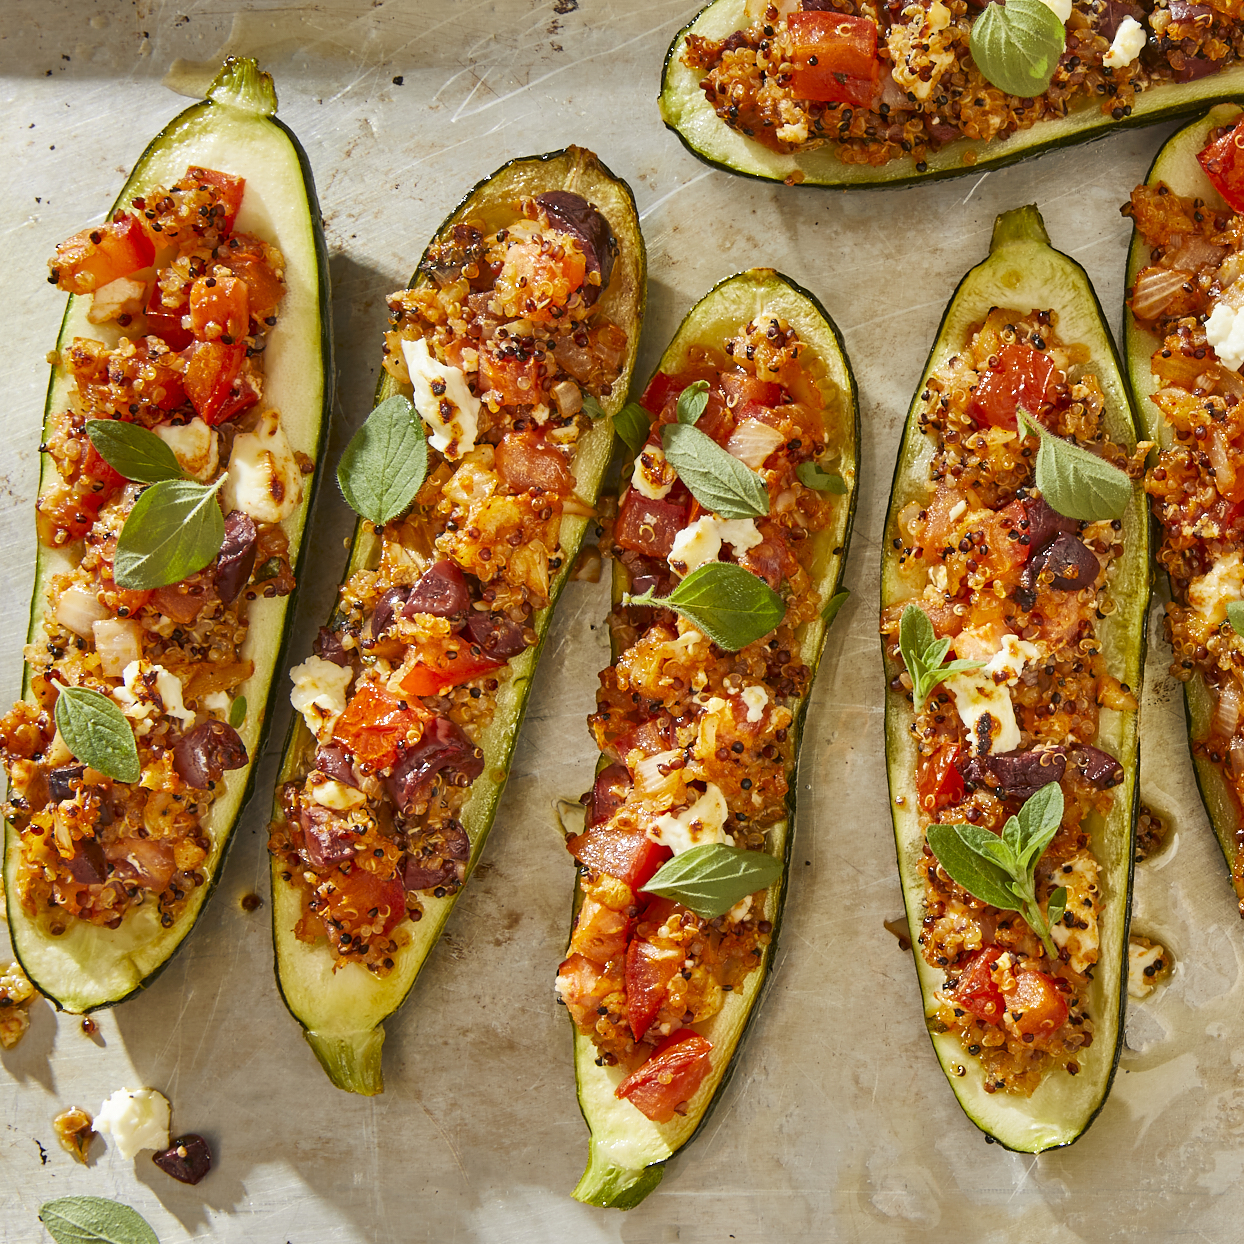 These vegetarian stuffed zucchinis are perfectly tender and fresh with the flavors of the Mediterranean. Olives and feta cheese deliver a nice salty bite, while quinoa adds a nutty flavor, along with protein and fiber. Source: EatingWell.com, May 2020